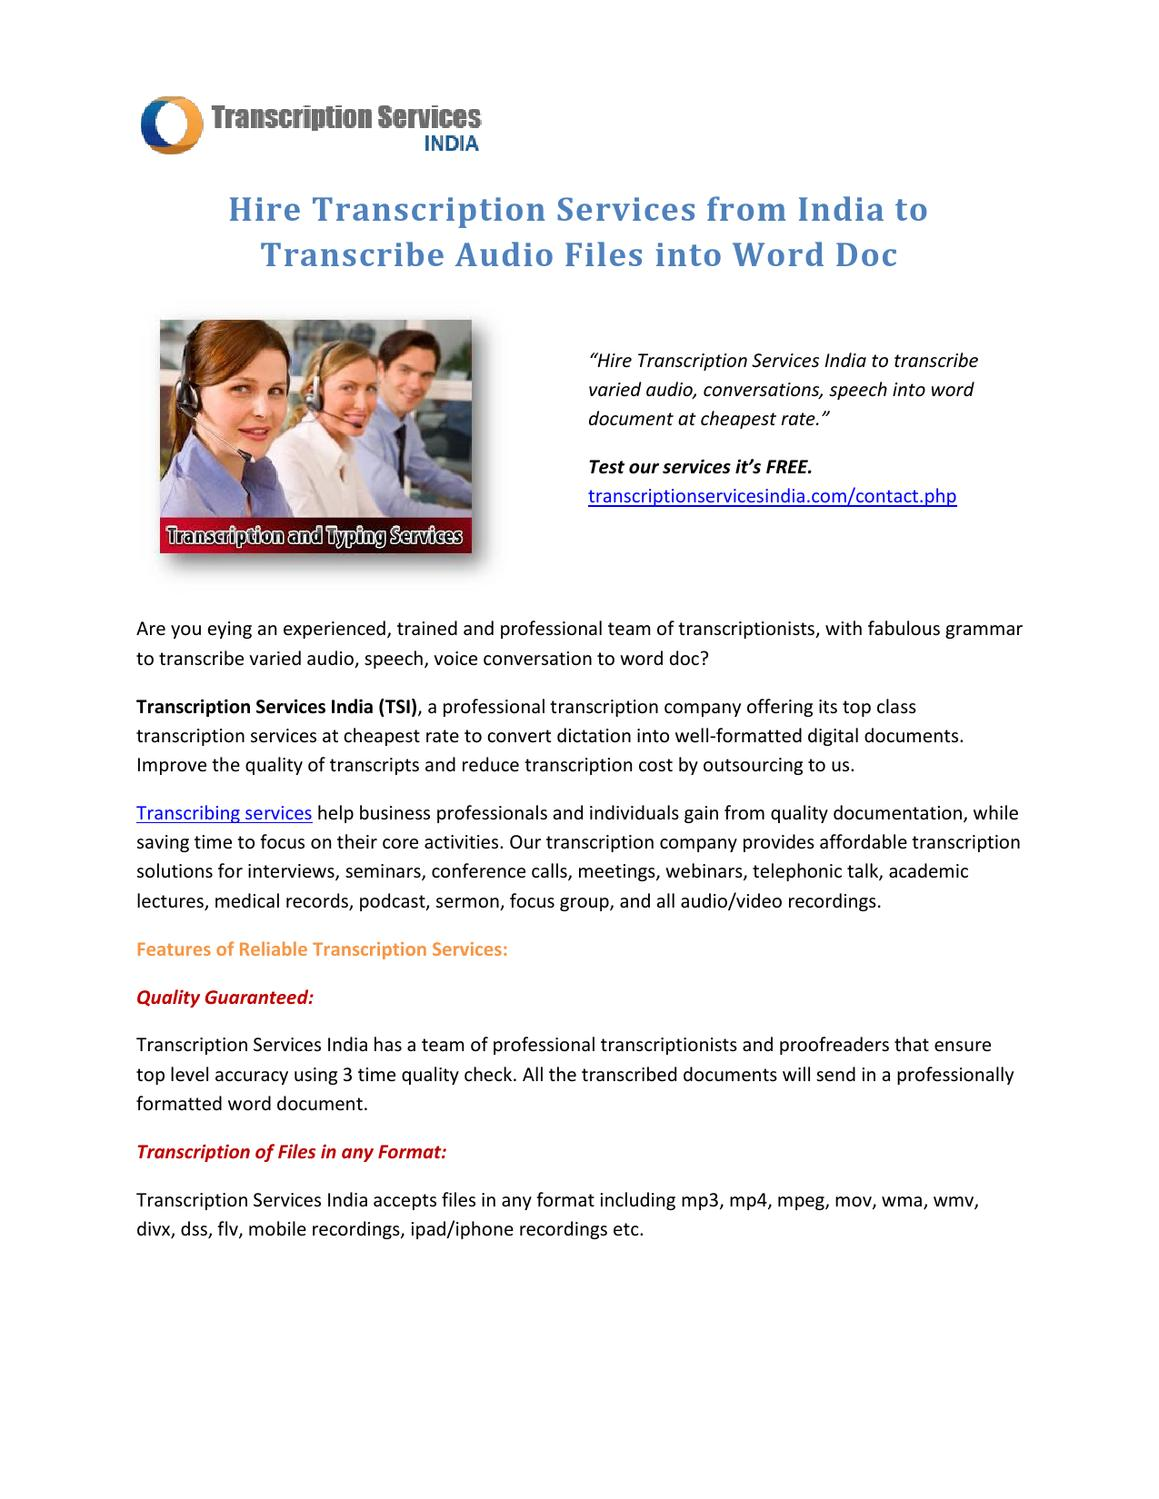 Hire Transcription Services from India to Transcribe Audio